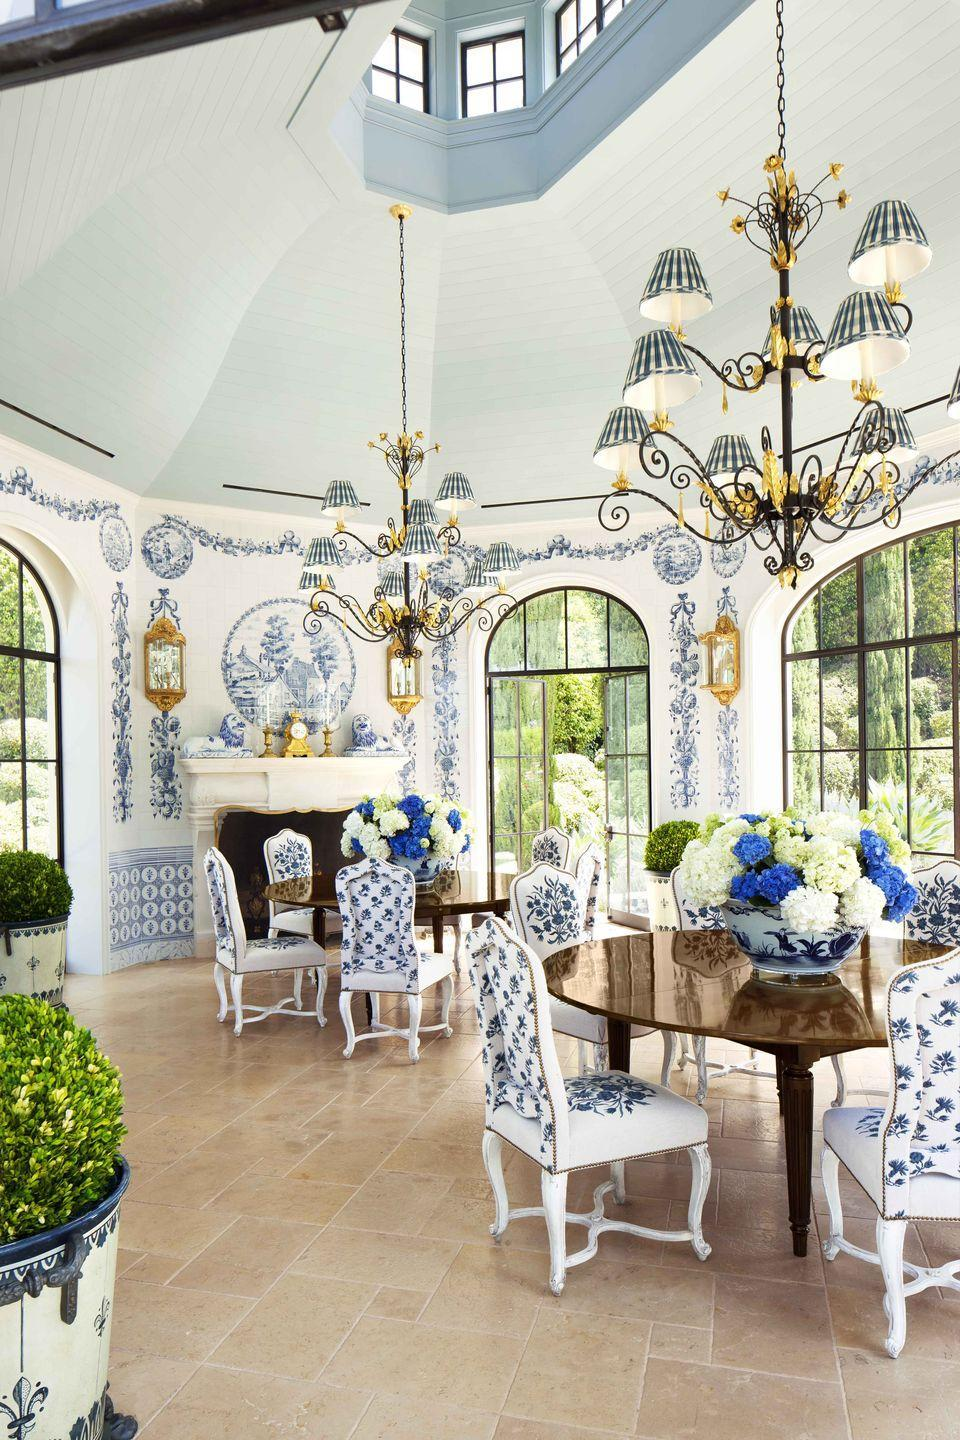 """<p>A fantasy in blue and white, the dining pavilion of a Los Angeles home by designer <a href=""""https://www.anthonybaratta.com"""" rel=""""nofollow noopener"""" target=""""_blank"""" data-ylk=""""slk:Anthony Baratta"""" class=""""link rapid-noclick-resp"""">Anthony Baratta</a> has ceilings painted in two lively shades of blue that accentuate the room's soaring height. The walls are covered in fanciful tiles from <a href=""""https://www.solarantiquetiles.com"""" rel=""""nofollow noopener"""" target=""""_blank"""" data-ylk=""""slk:Solar Antique Tiles"""" class=""""link rapid-noclick-resp"""">Solar Antique Tiles</a>. </p>"""